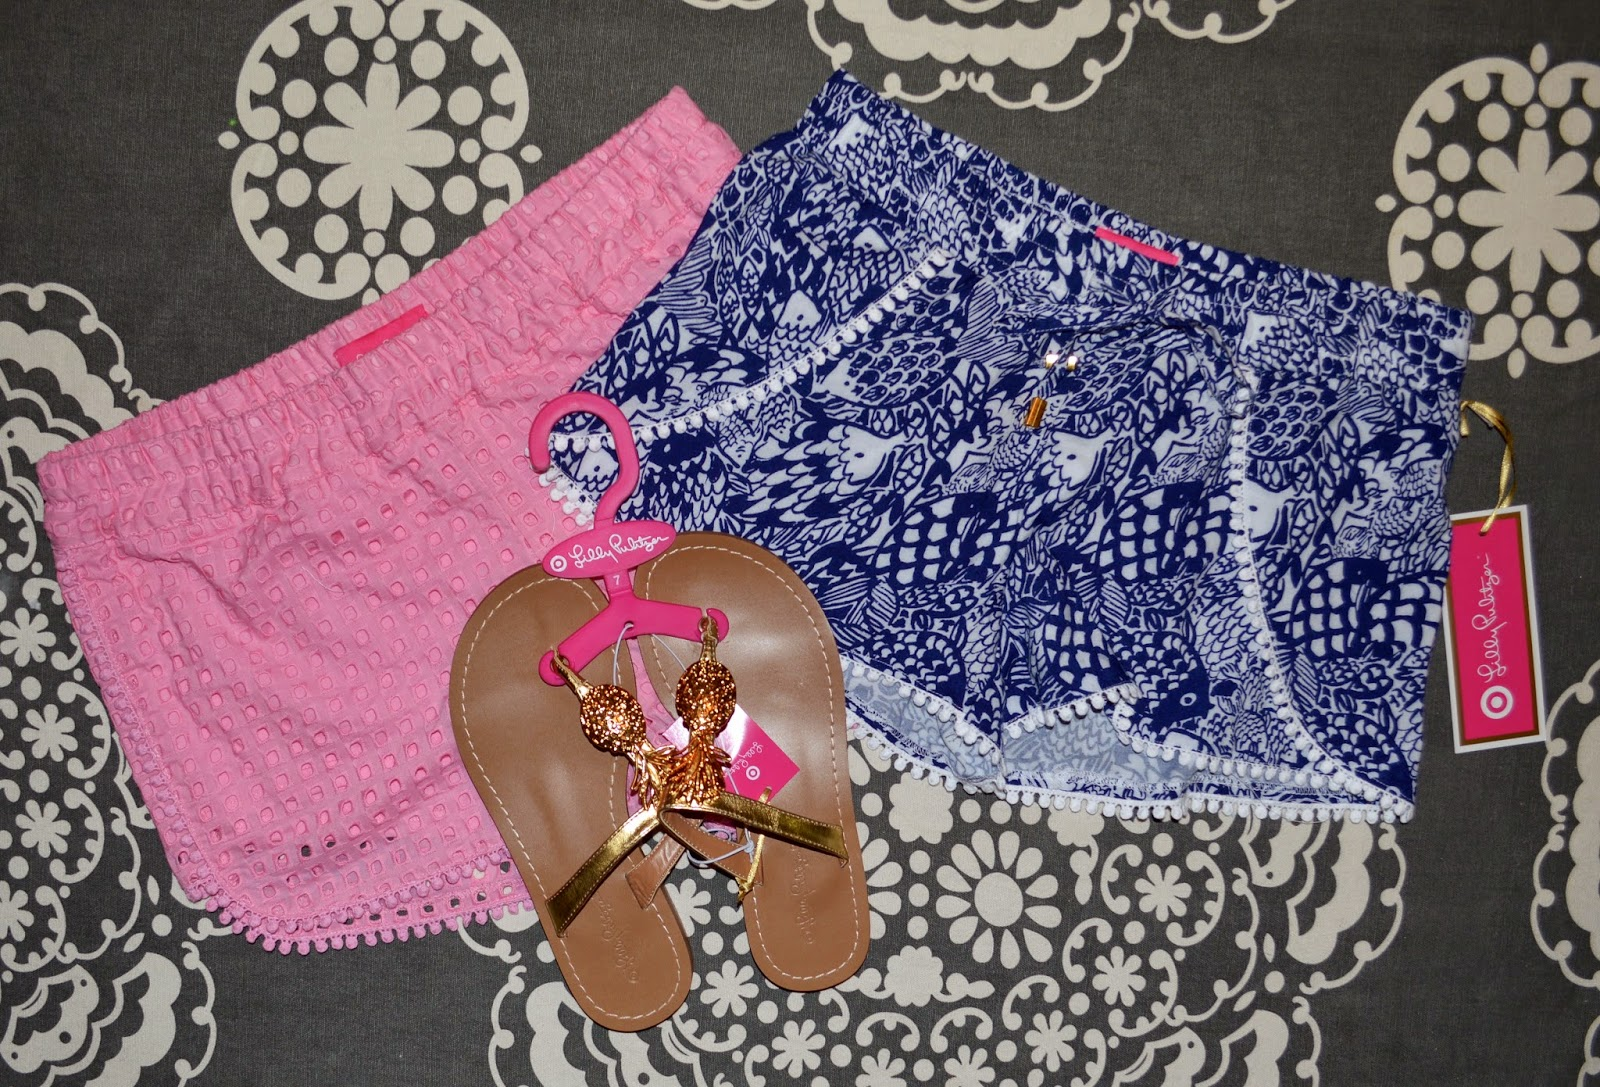 ff586a2eadaa I Love Orla Kiely  Haul + Review  Lilly Pulitzer for Target Shorts ...